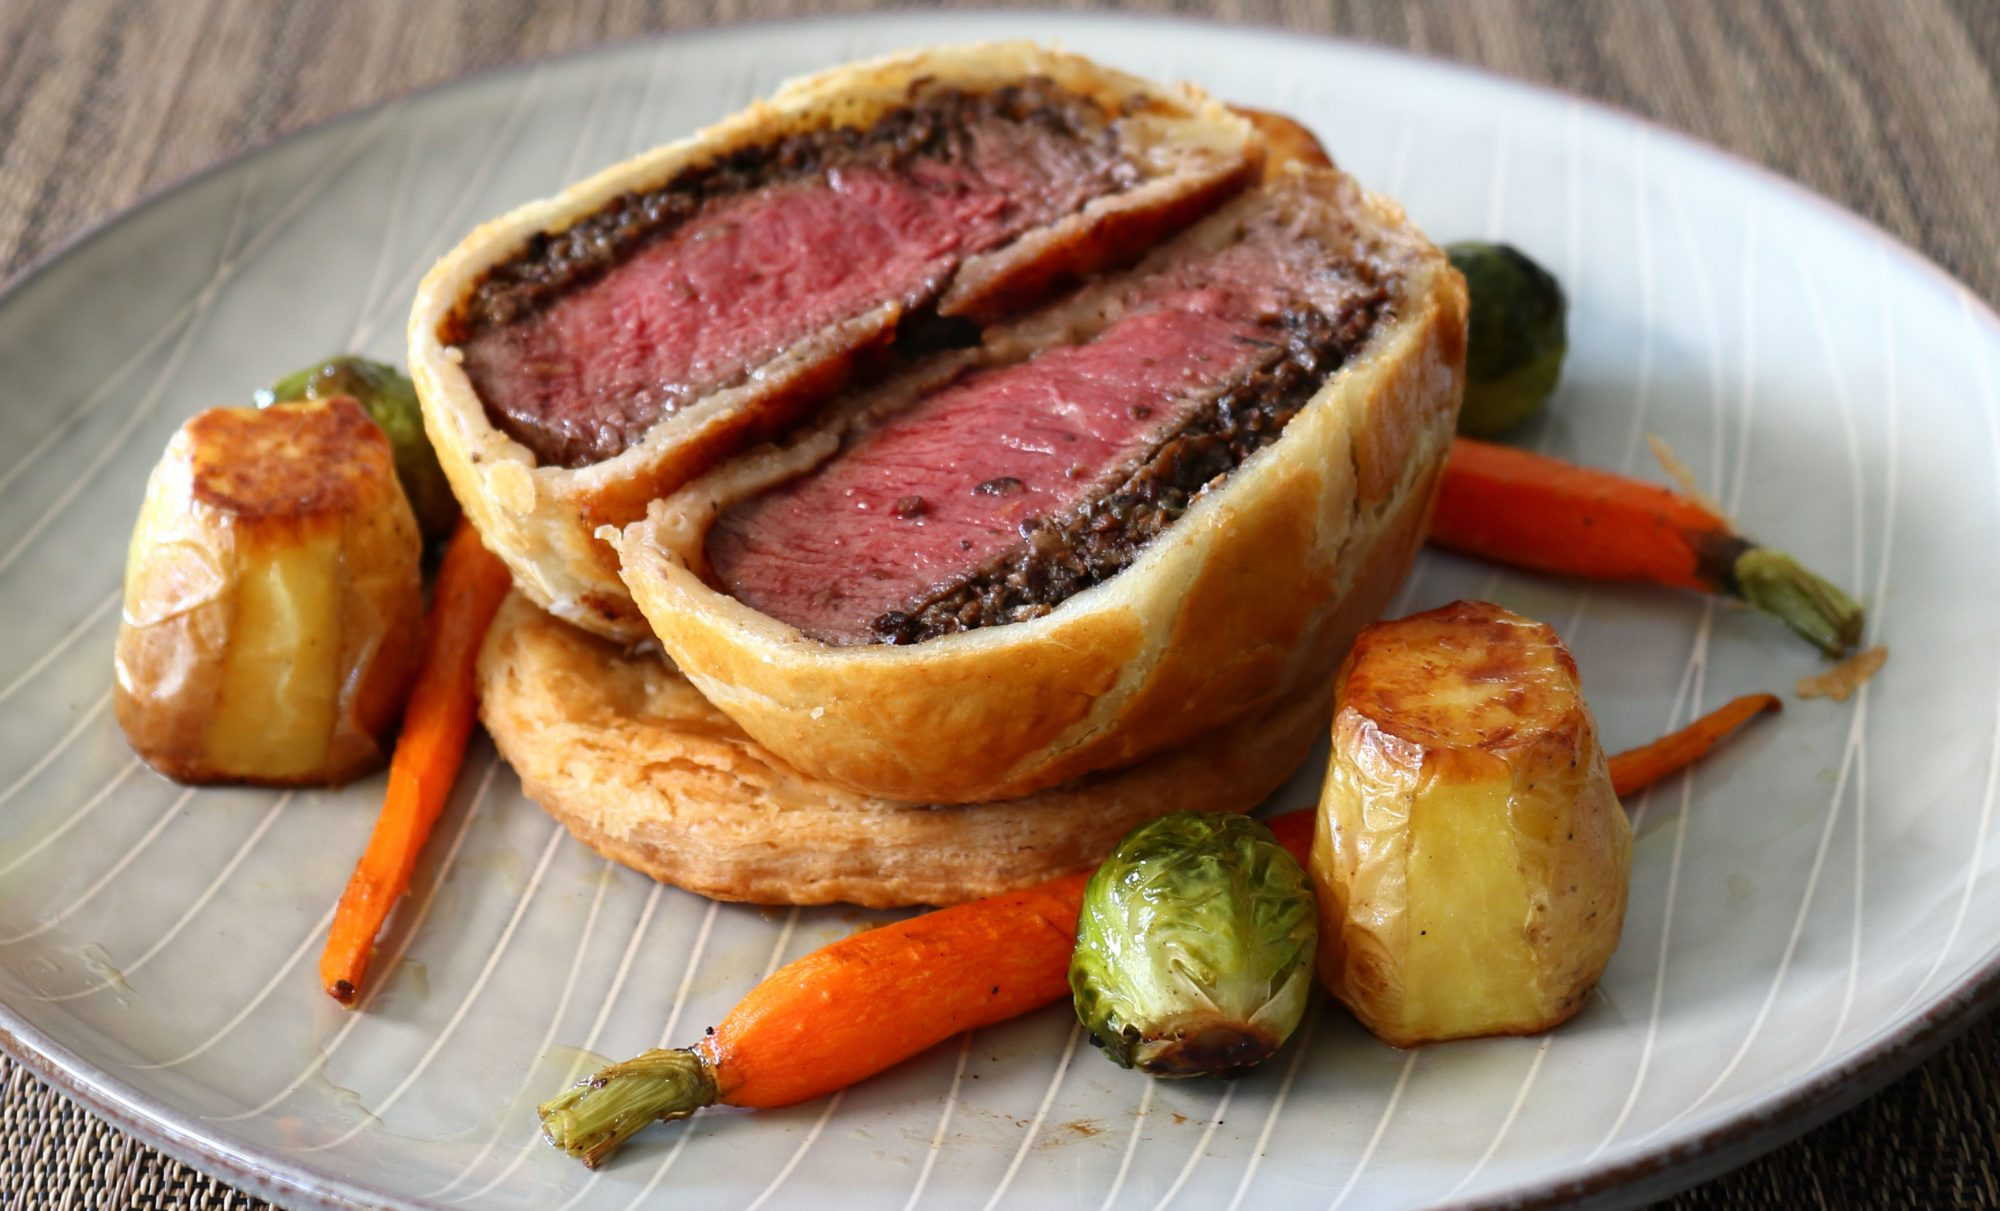 a mini beef Wellington sliced open to show the juicy-looking pink interior, on a plate with fondant potatoes, roasted Brussels sprouts, and carrots